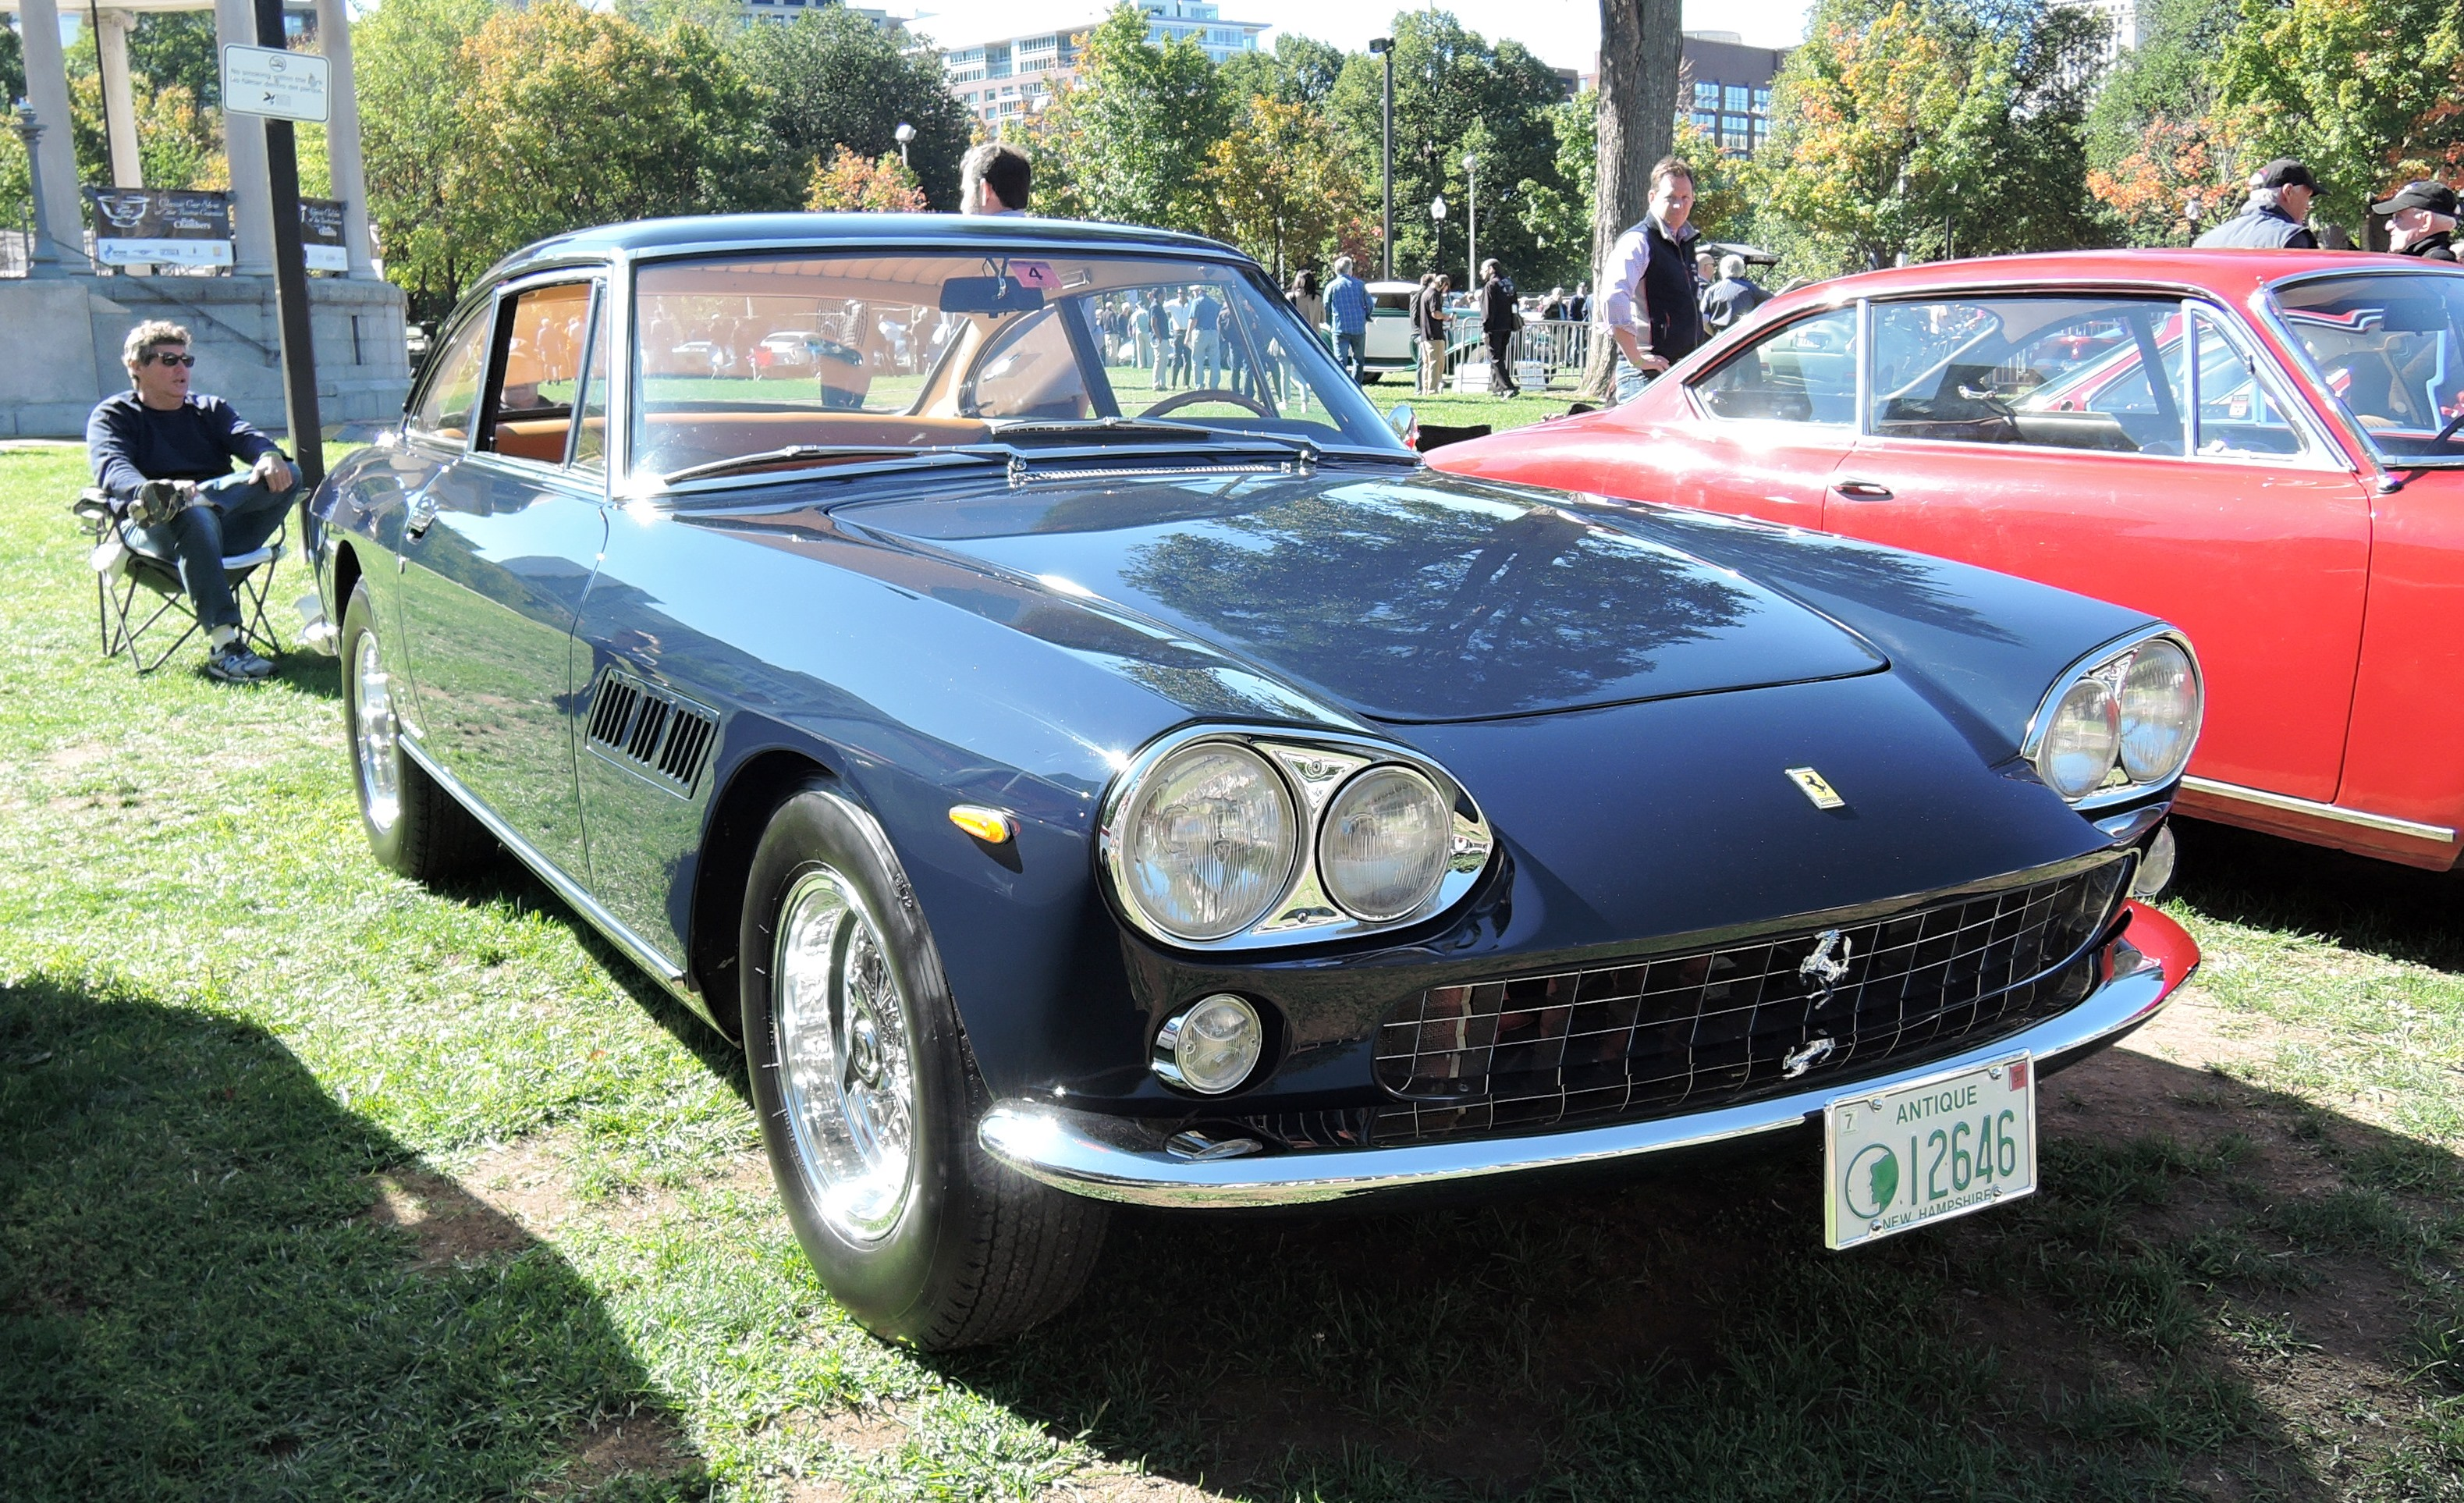 blue 1964 Ferrari 330 GT - The Boston Cup on Boston Common